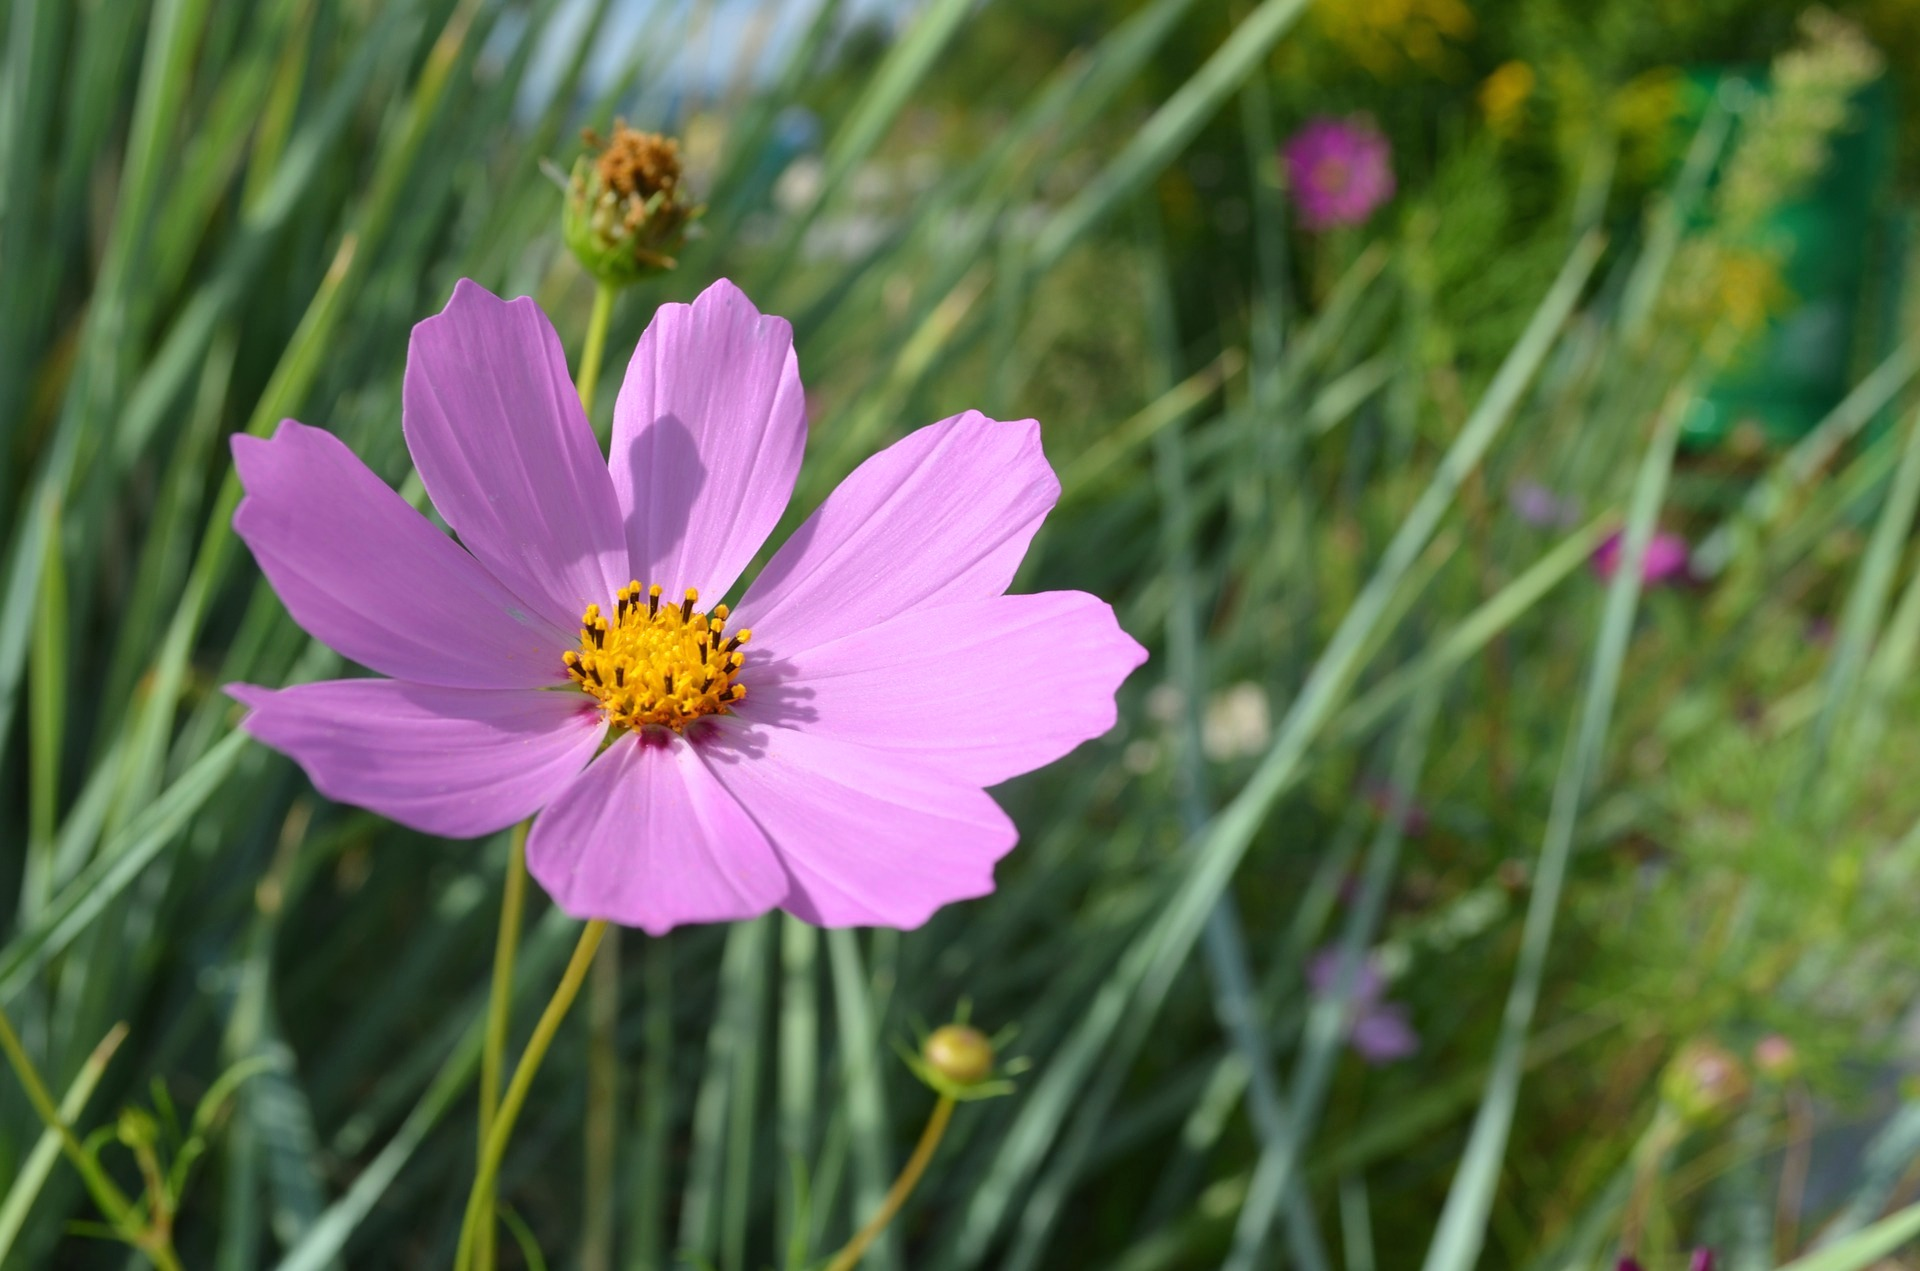 Cosmos  How to Plant  Grow  and Care for Cosmos Flowers   The Old     Cosmos  How to Plant  Grow  and Care for Cosmos Flowers   The Old Farmer s  Almanac